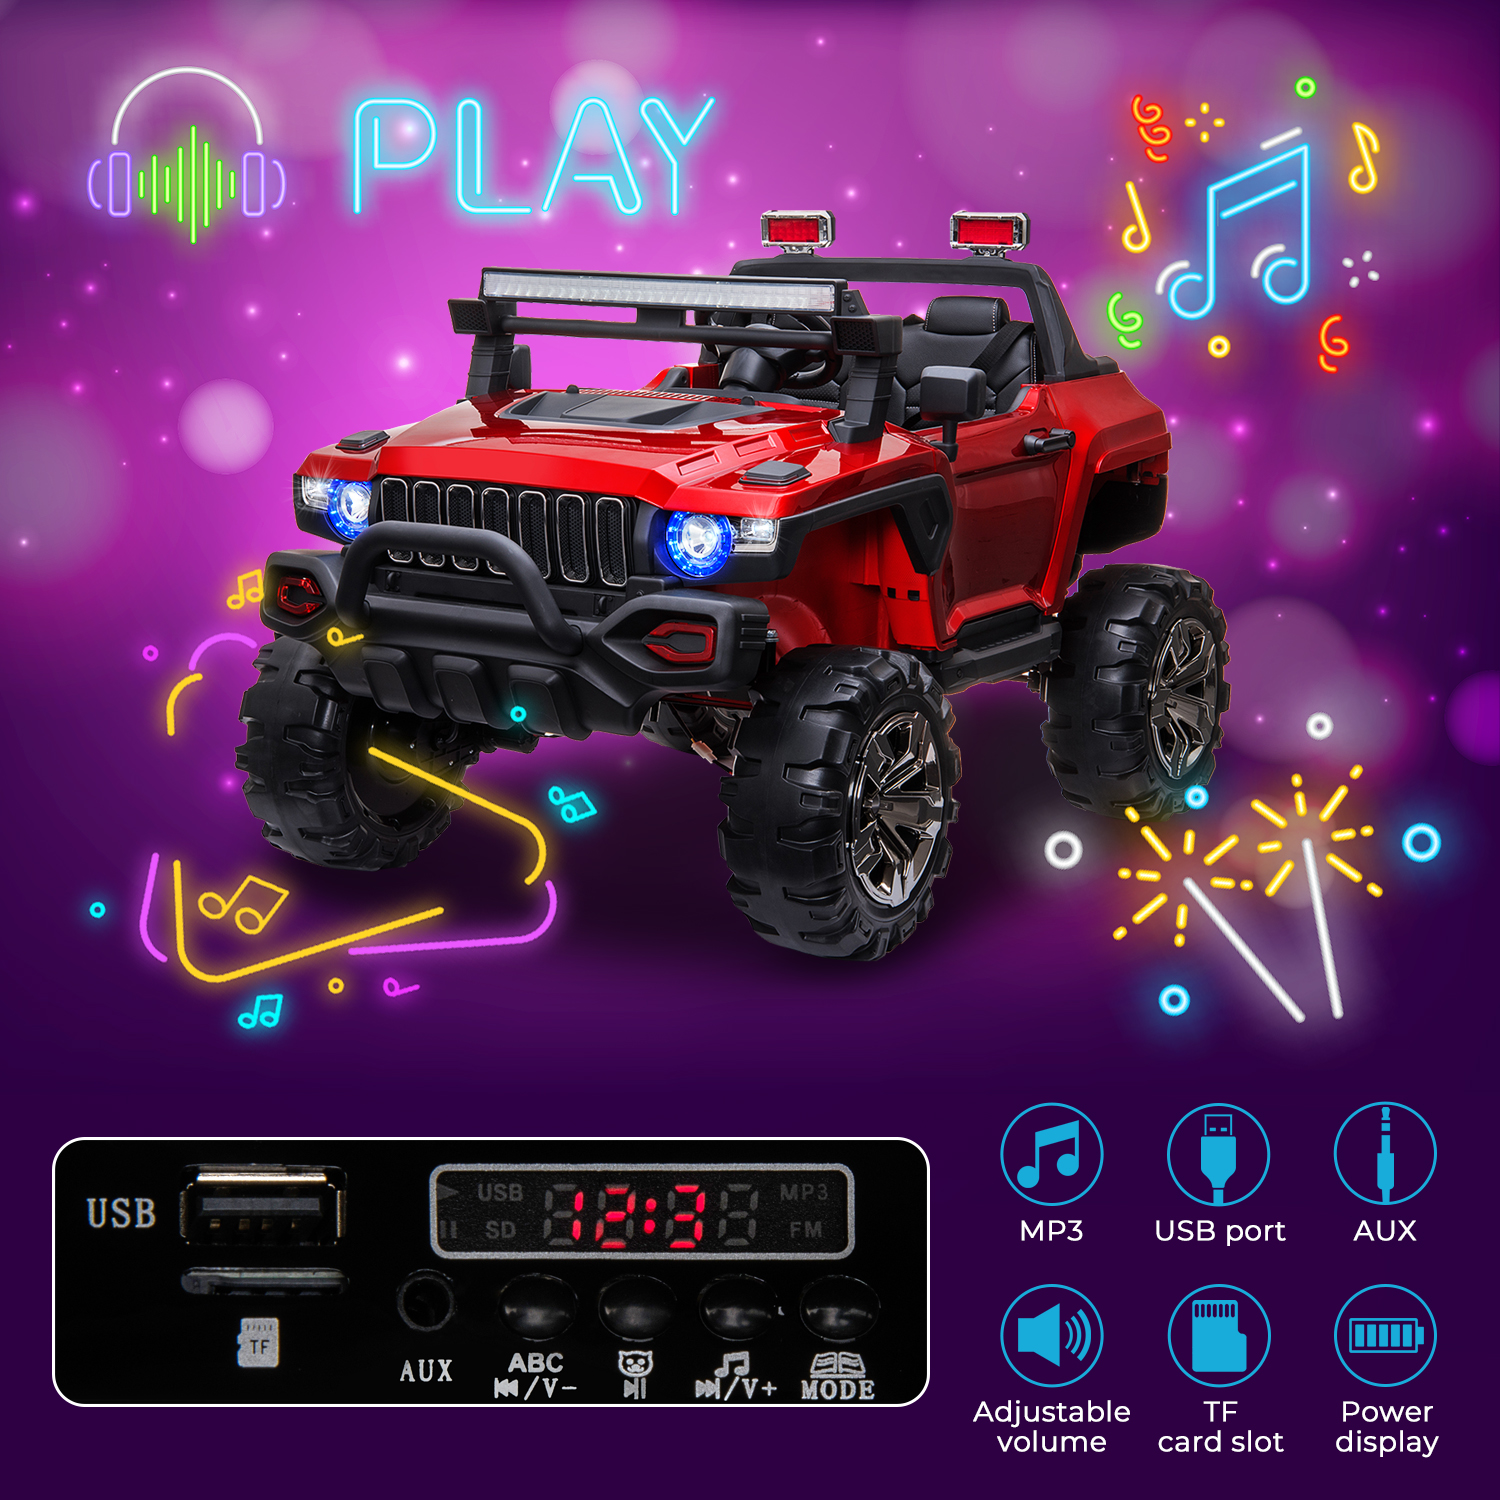 2-Seaters-4-4-Off-Road-Electric-12V-Ride-on-Car-with-Remote-Control miniature 23